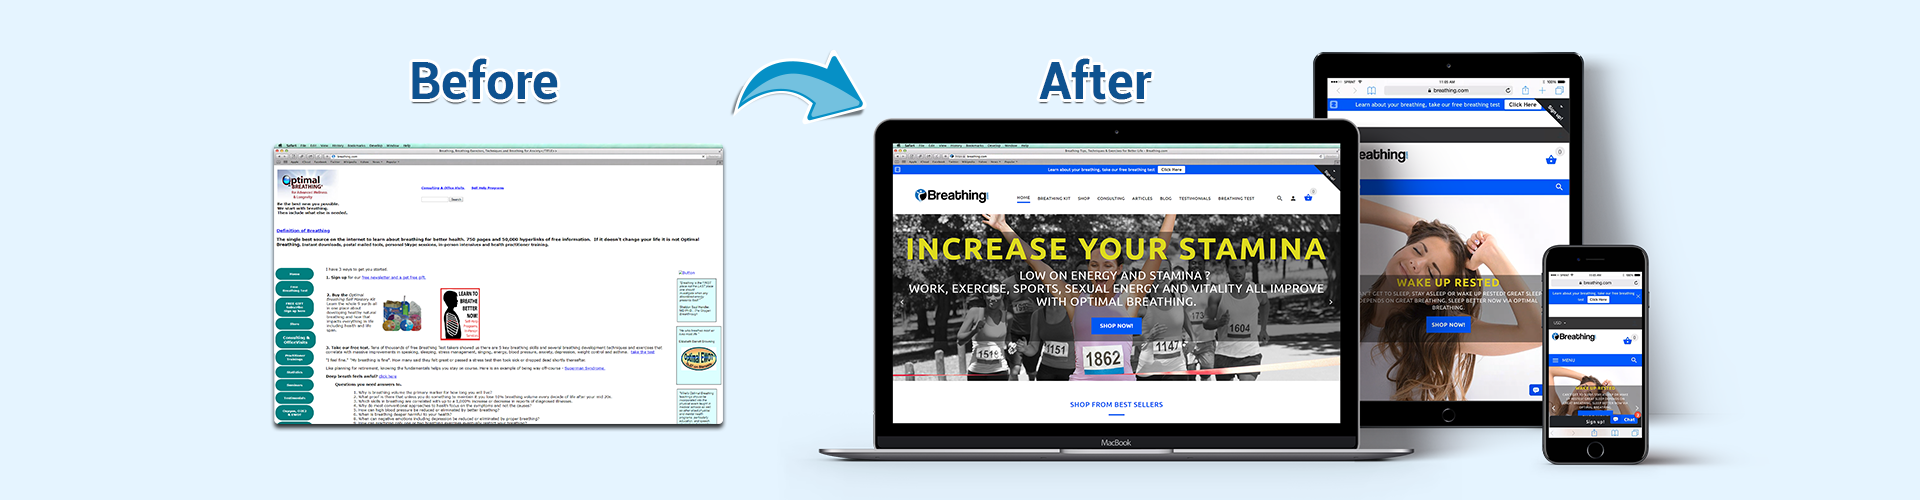 Before and After - Breathing.com